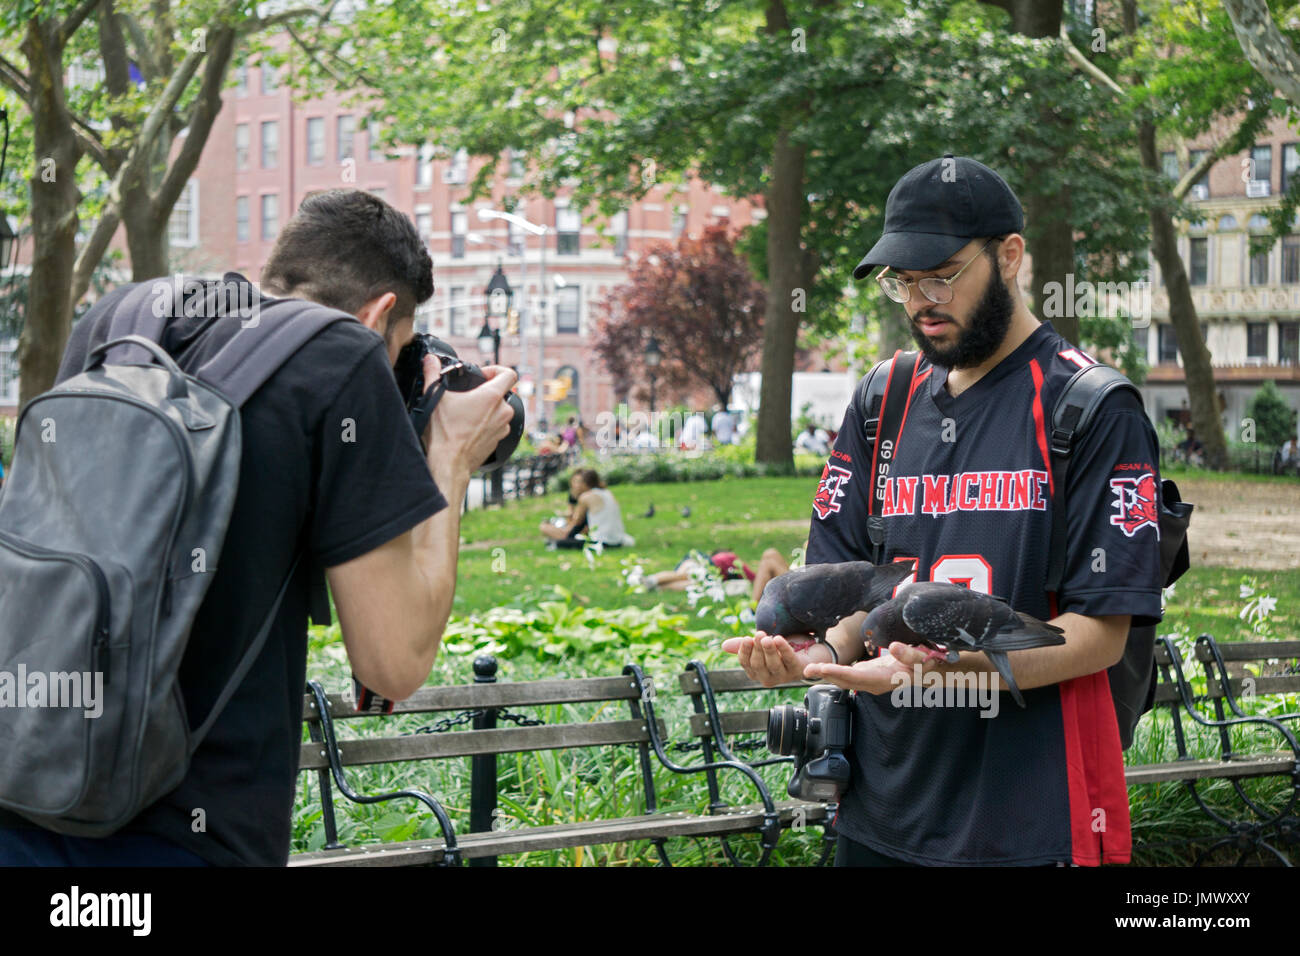 A tourist in Washington Square Park feeds pigeons from his hand while a friend commemorates it with a photo. New York City. - Stock Image